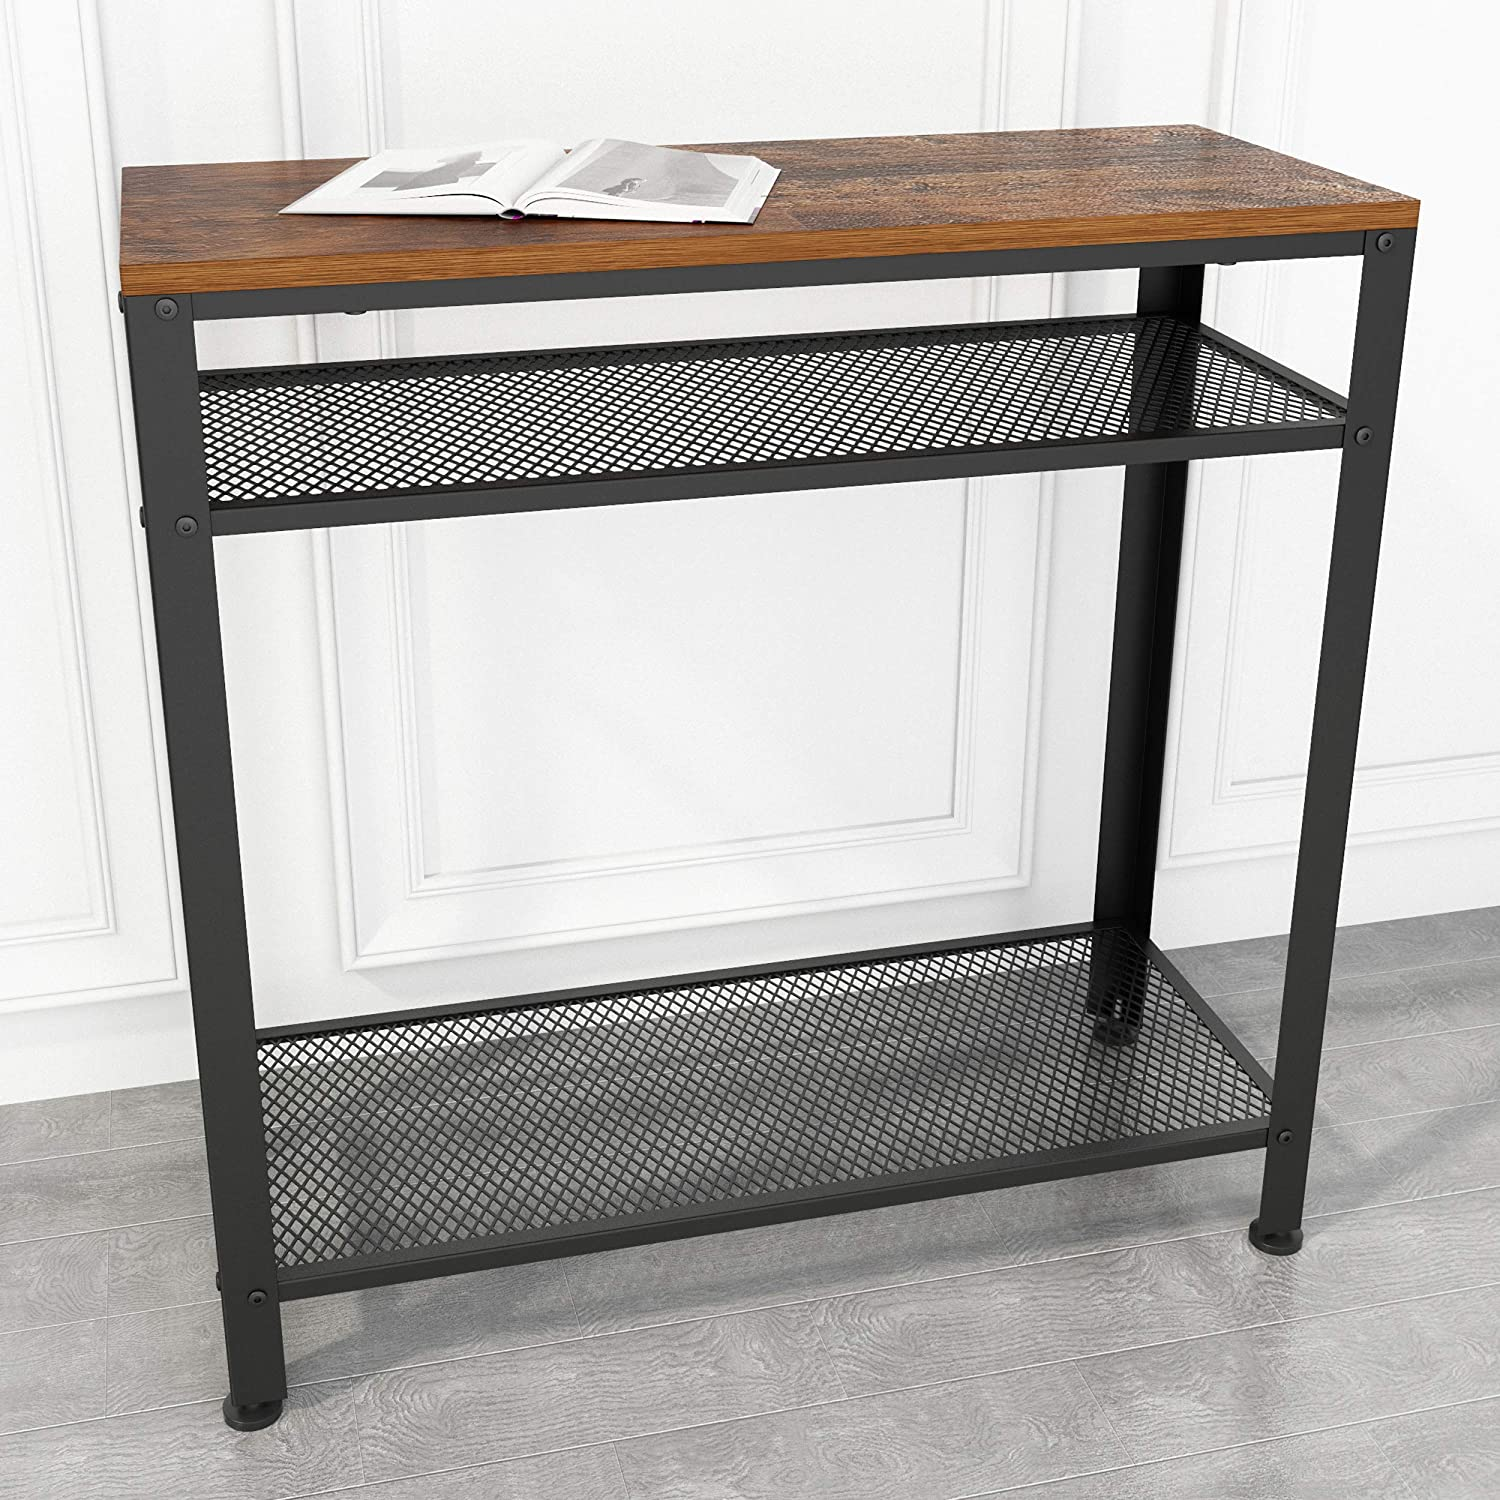 JOISCOPE Console Table, Industrial Sofa Table with Mesh Storage Shelves for Small Spaces, Narrow, Entryway, Foyer, Hallway(Vintage Oak Finish)